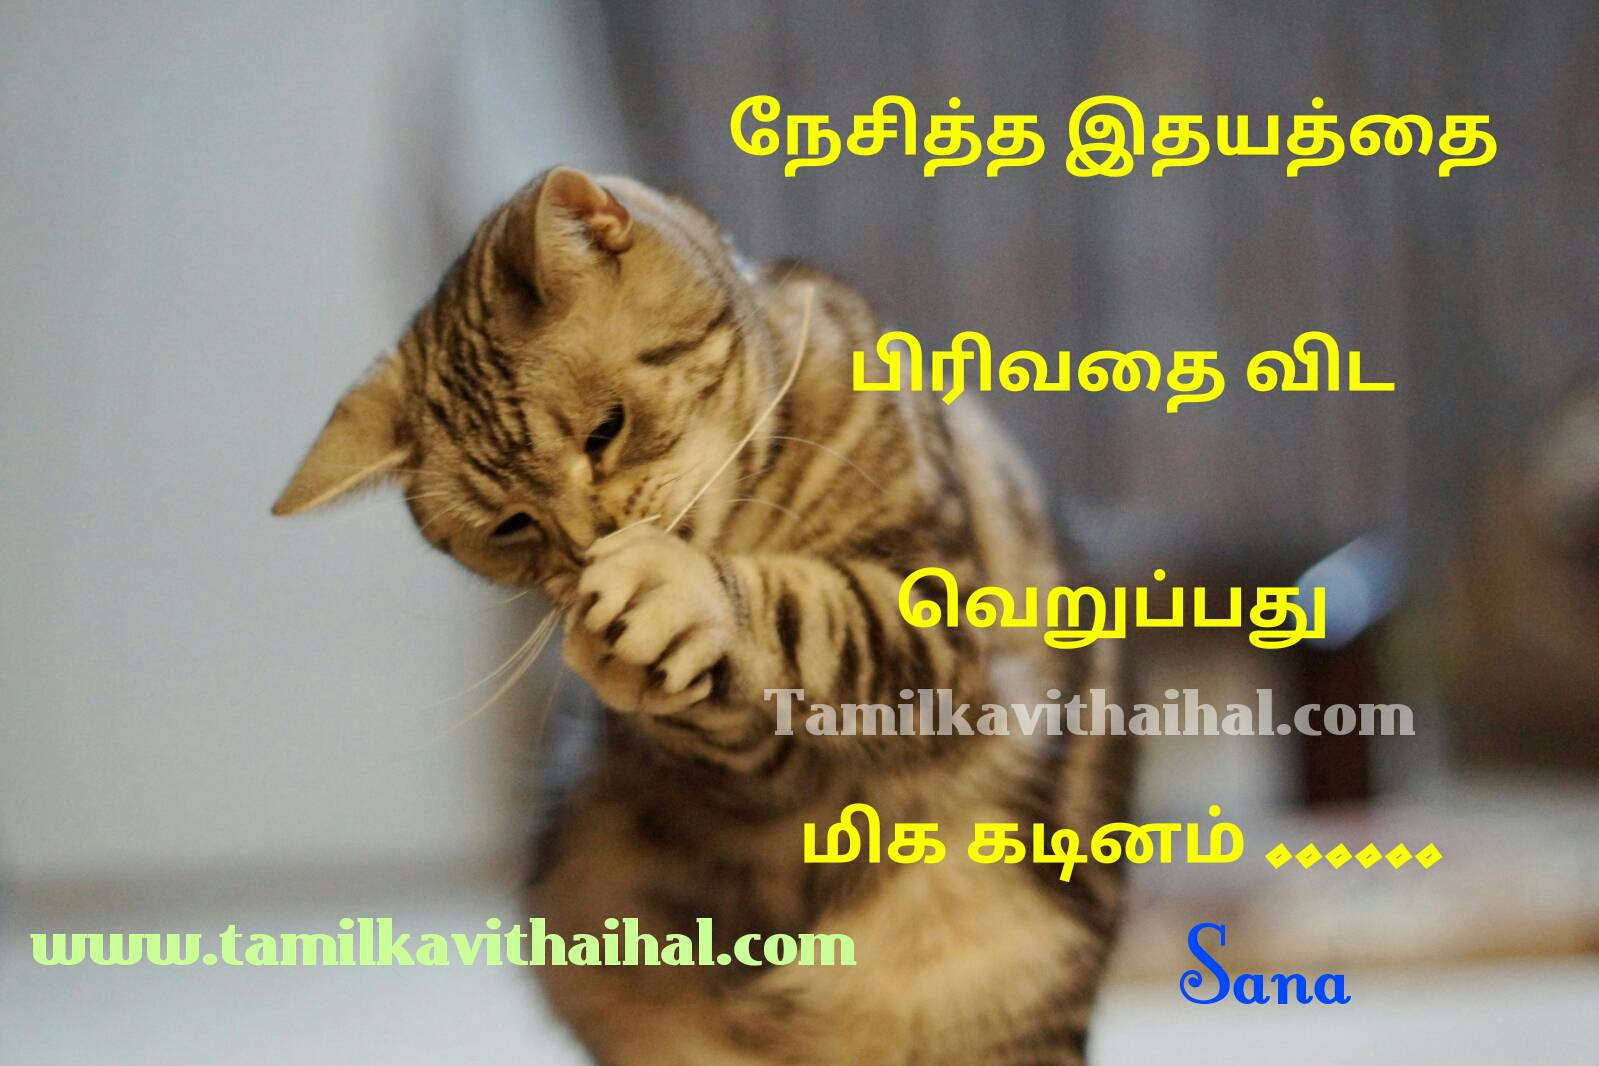 Beautiful tamil pirivu thathuvam veruppu hate others life kadinam nesam quotes sana pictures download